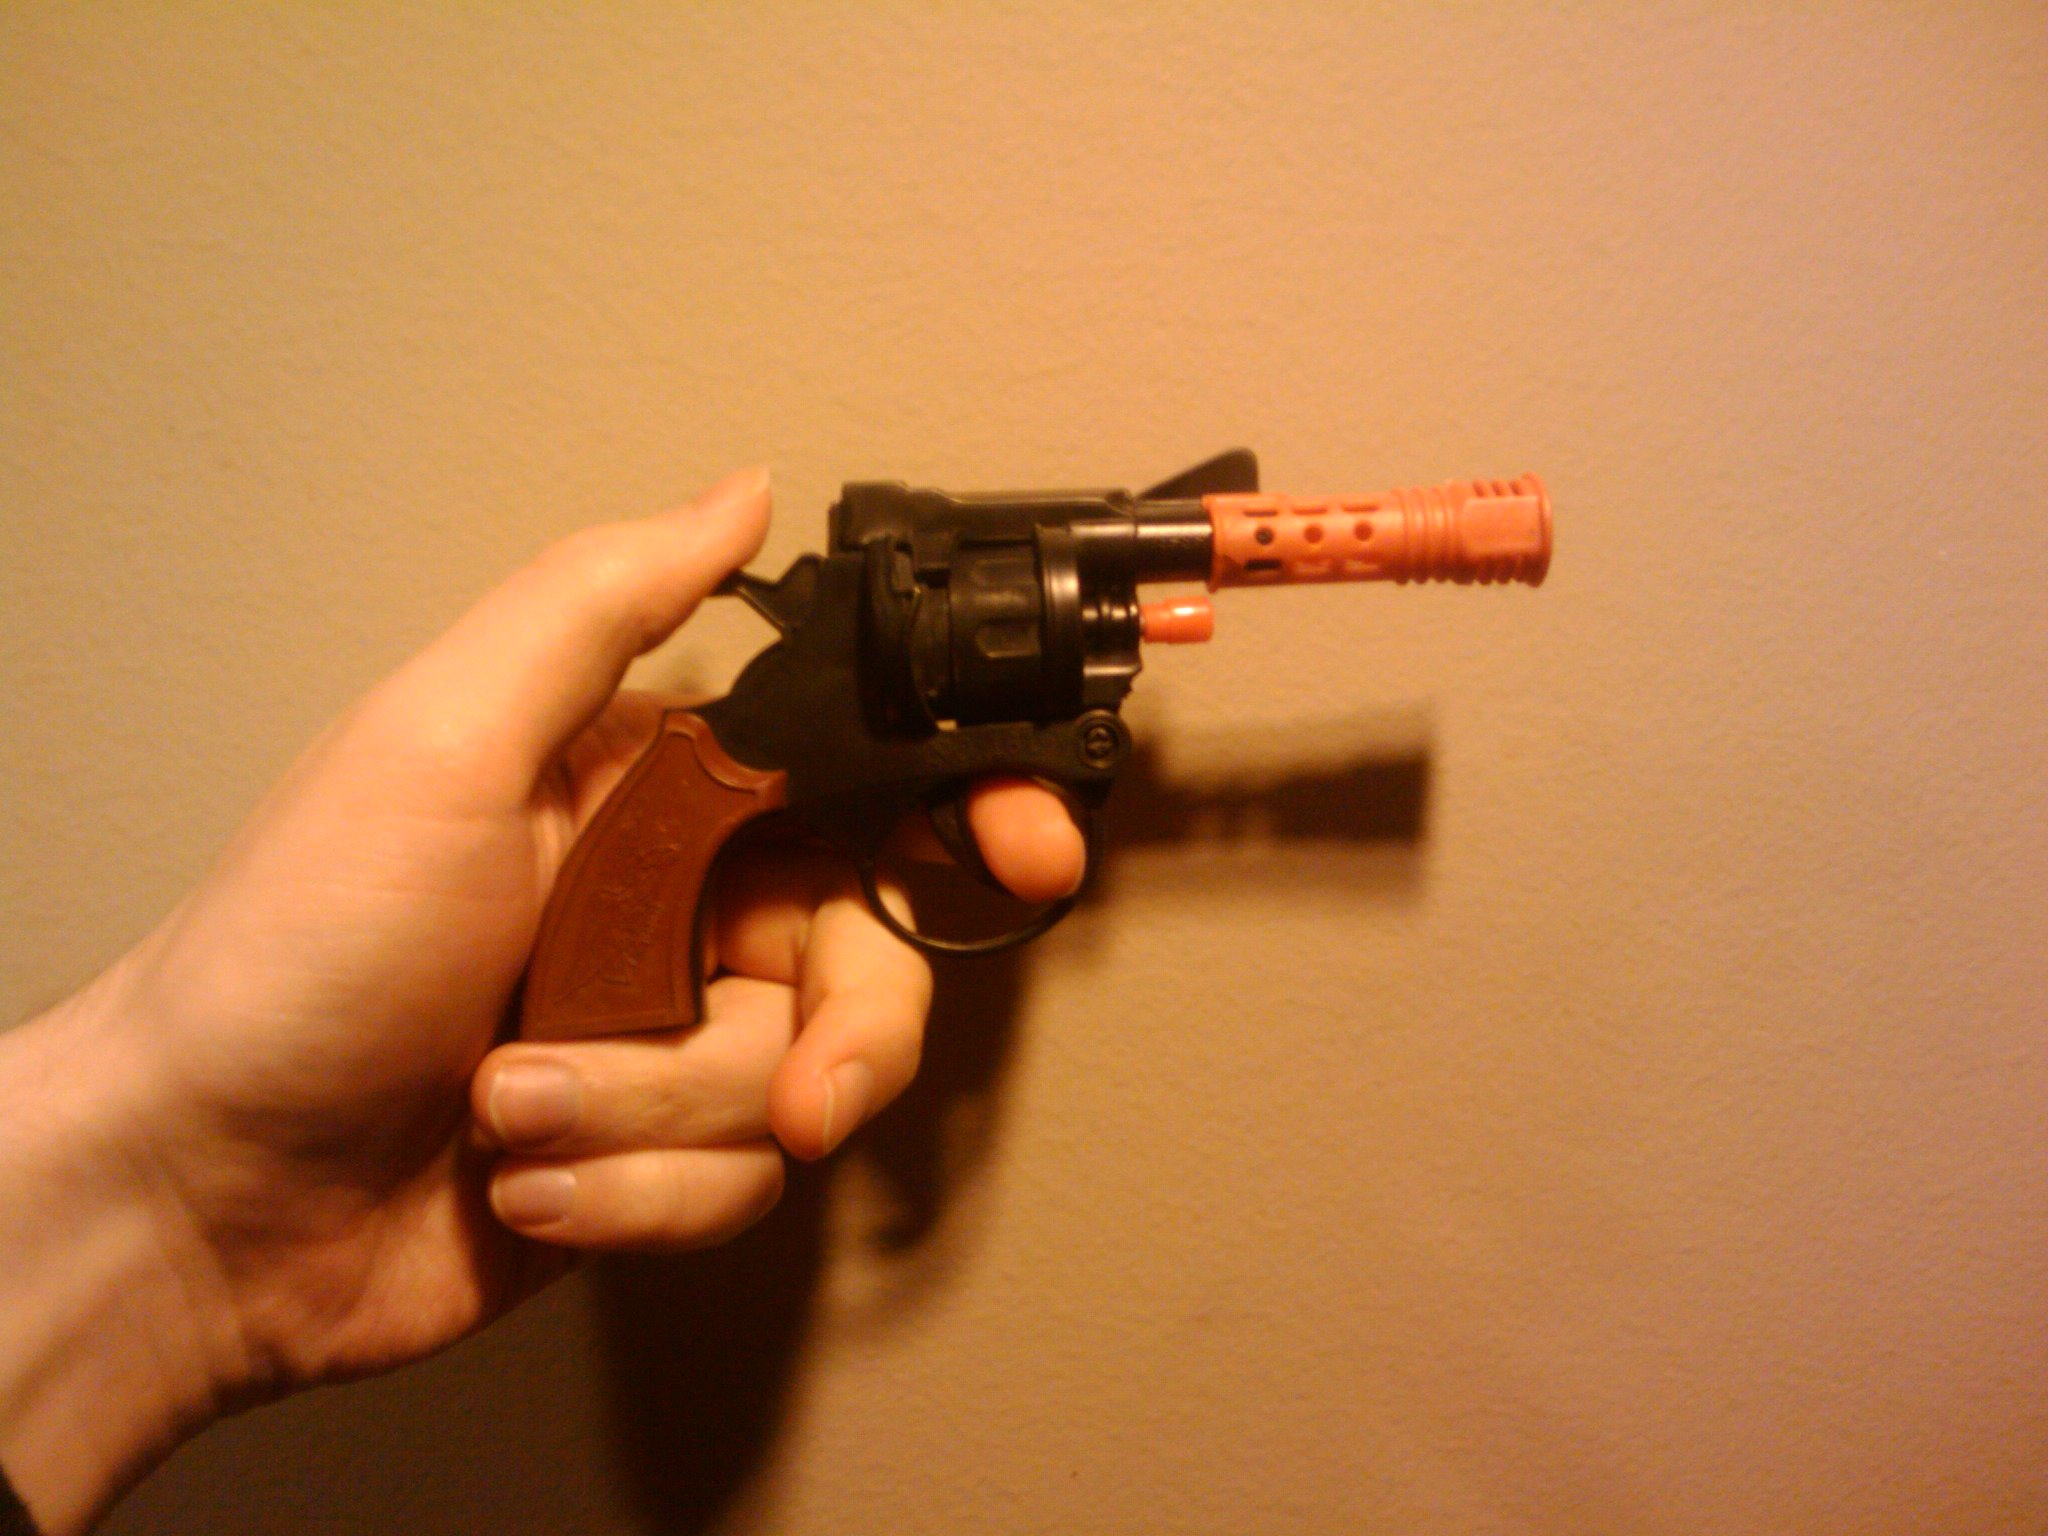 Cap Gun Wikipedia This Should Pop Right Off Then There Is A Under That You Pull Modern Its Barrel Made From Bright Orange Plastic To Prevent It Being Mistaken For Real